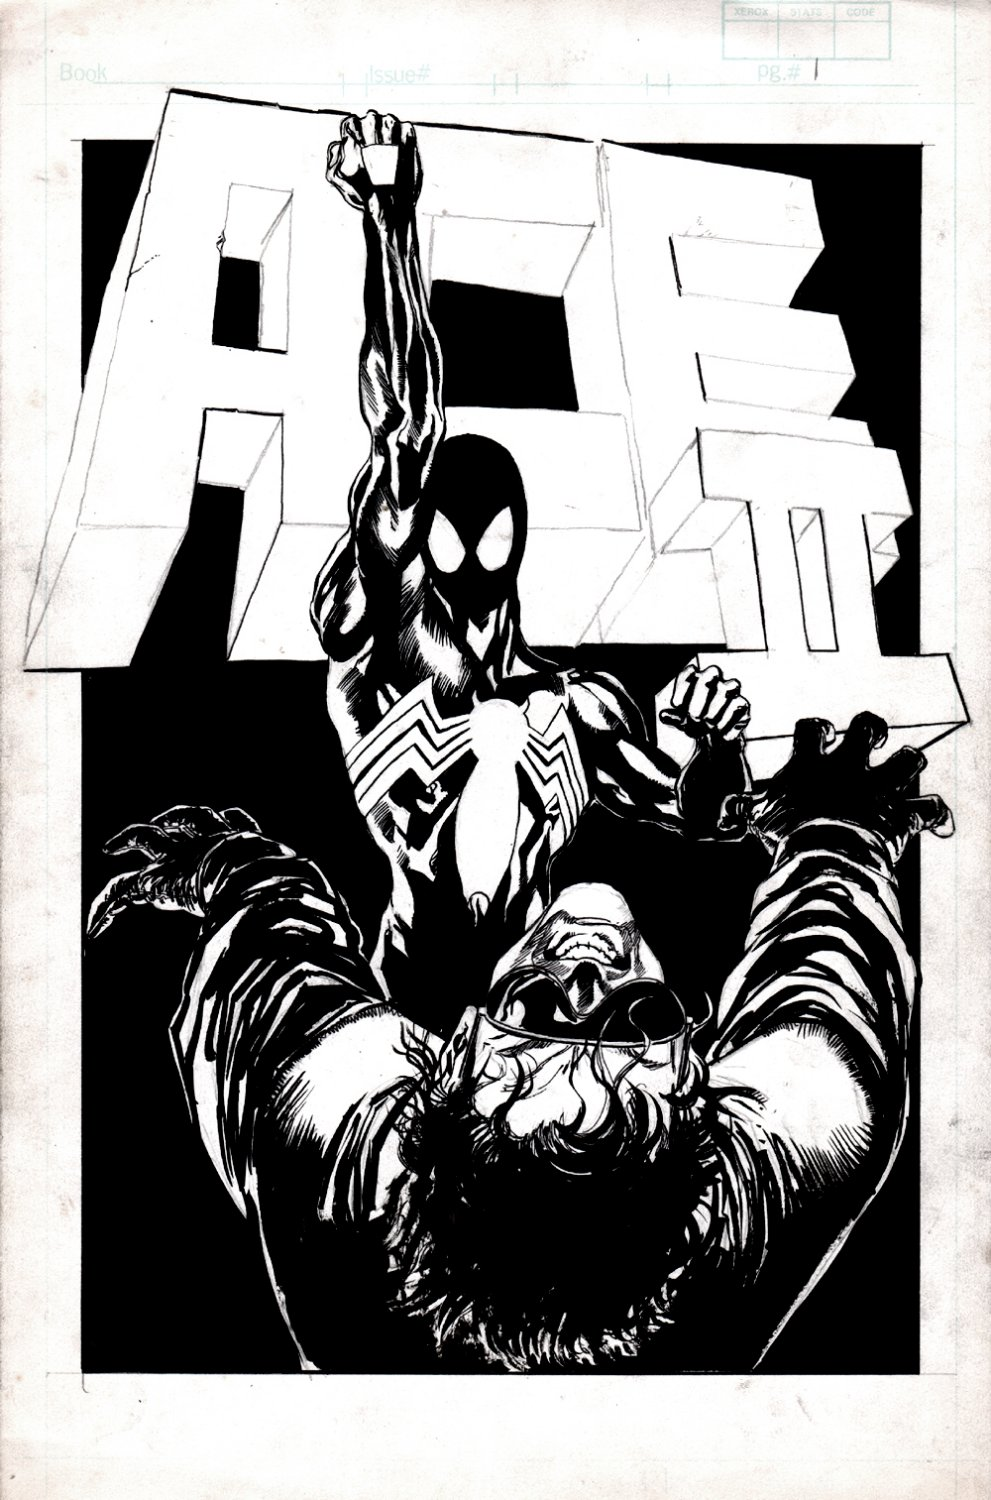 Spectacular Spider-Man Annual #6 p 1 SPLASH (Black Costume Spider-Man Punches Out Ace) Published or Unpublished 1986